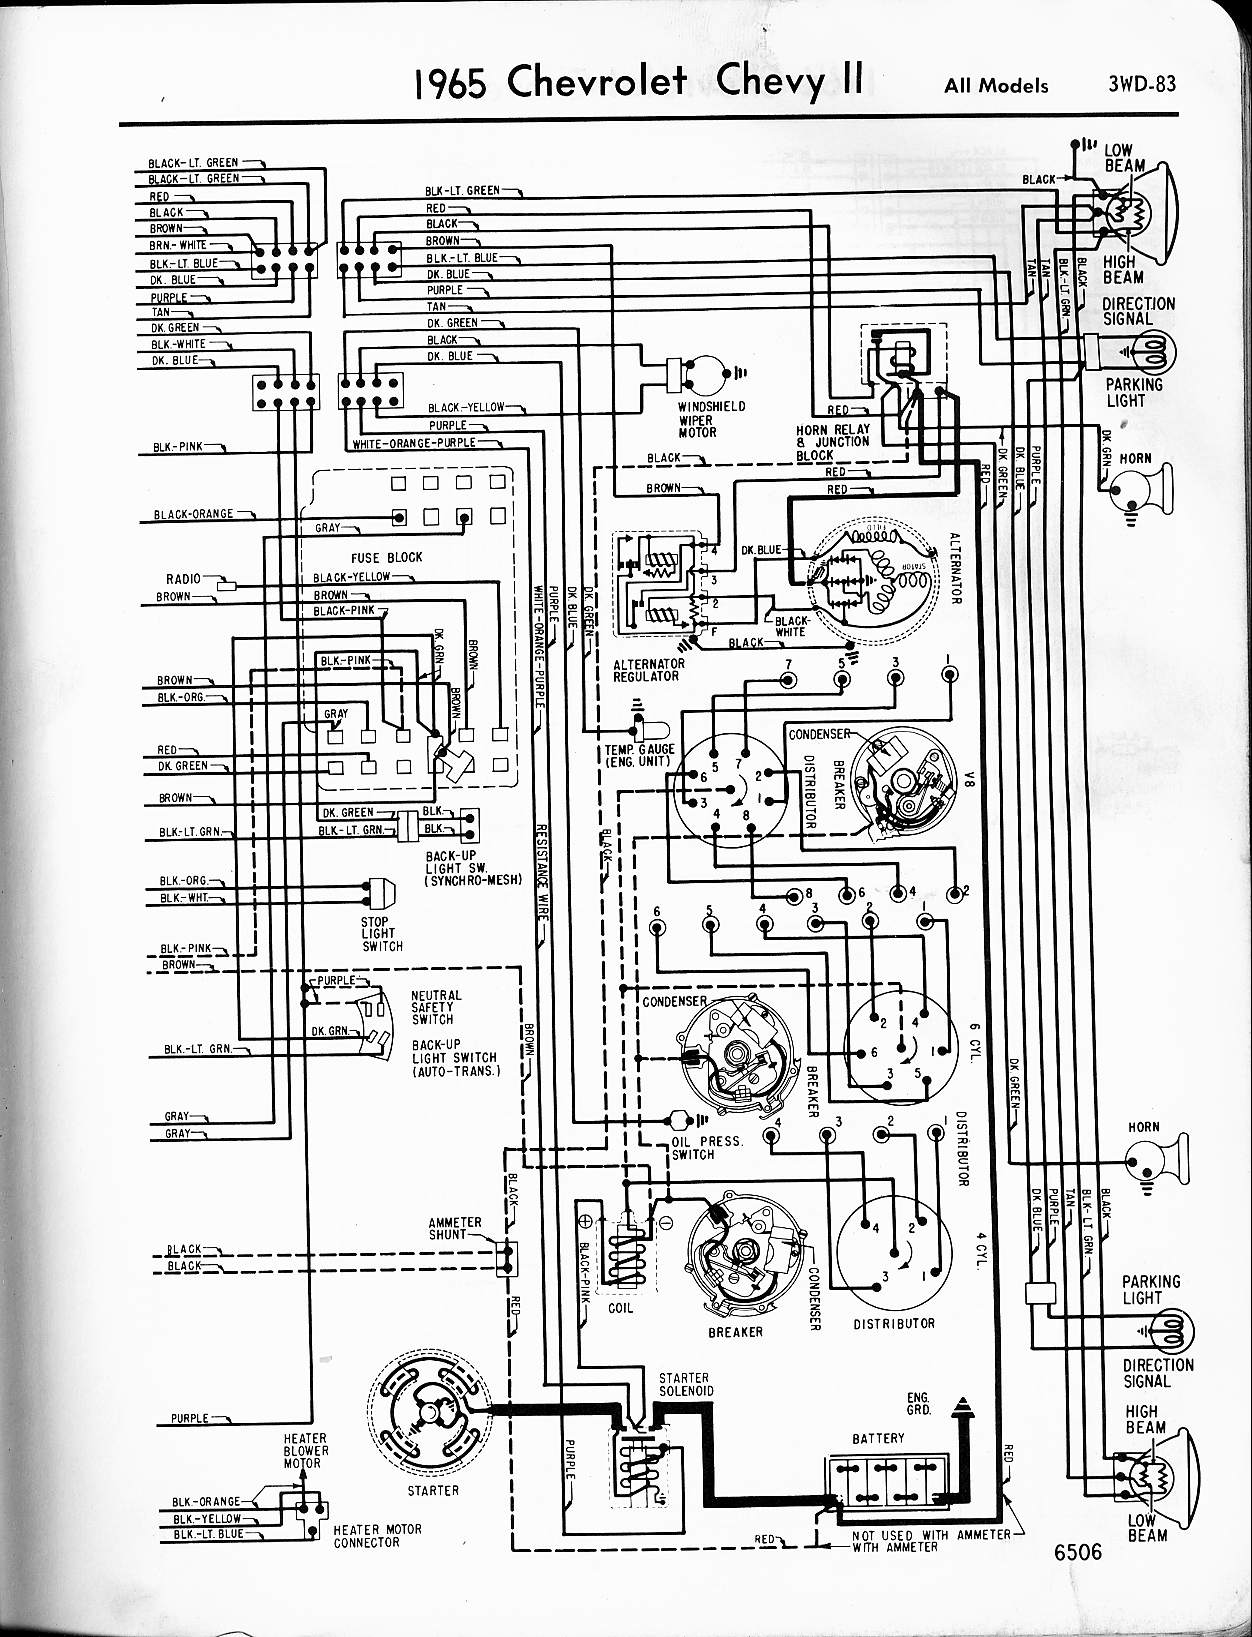 MWireChev65_3WD 083 chevy diagrams 1971 chevy truck wiring diagram at webbmarketing.co